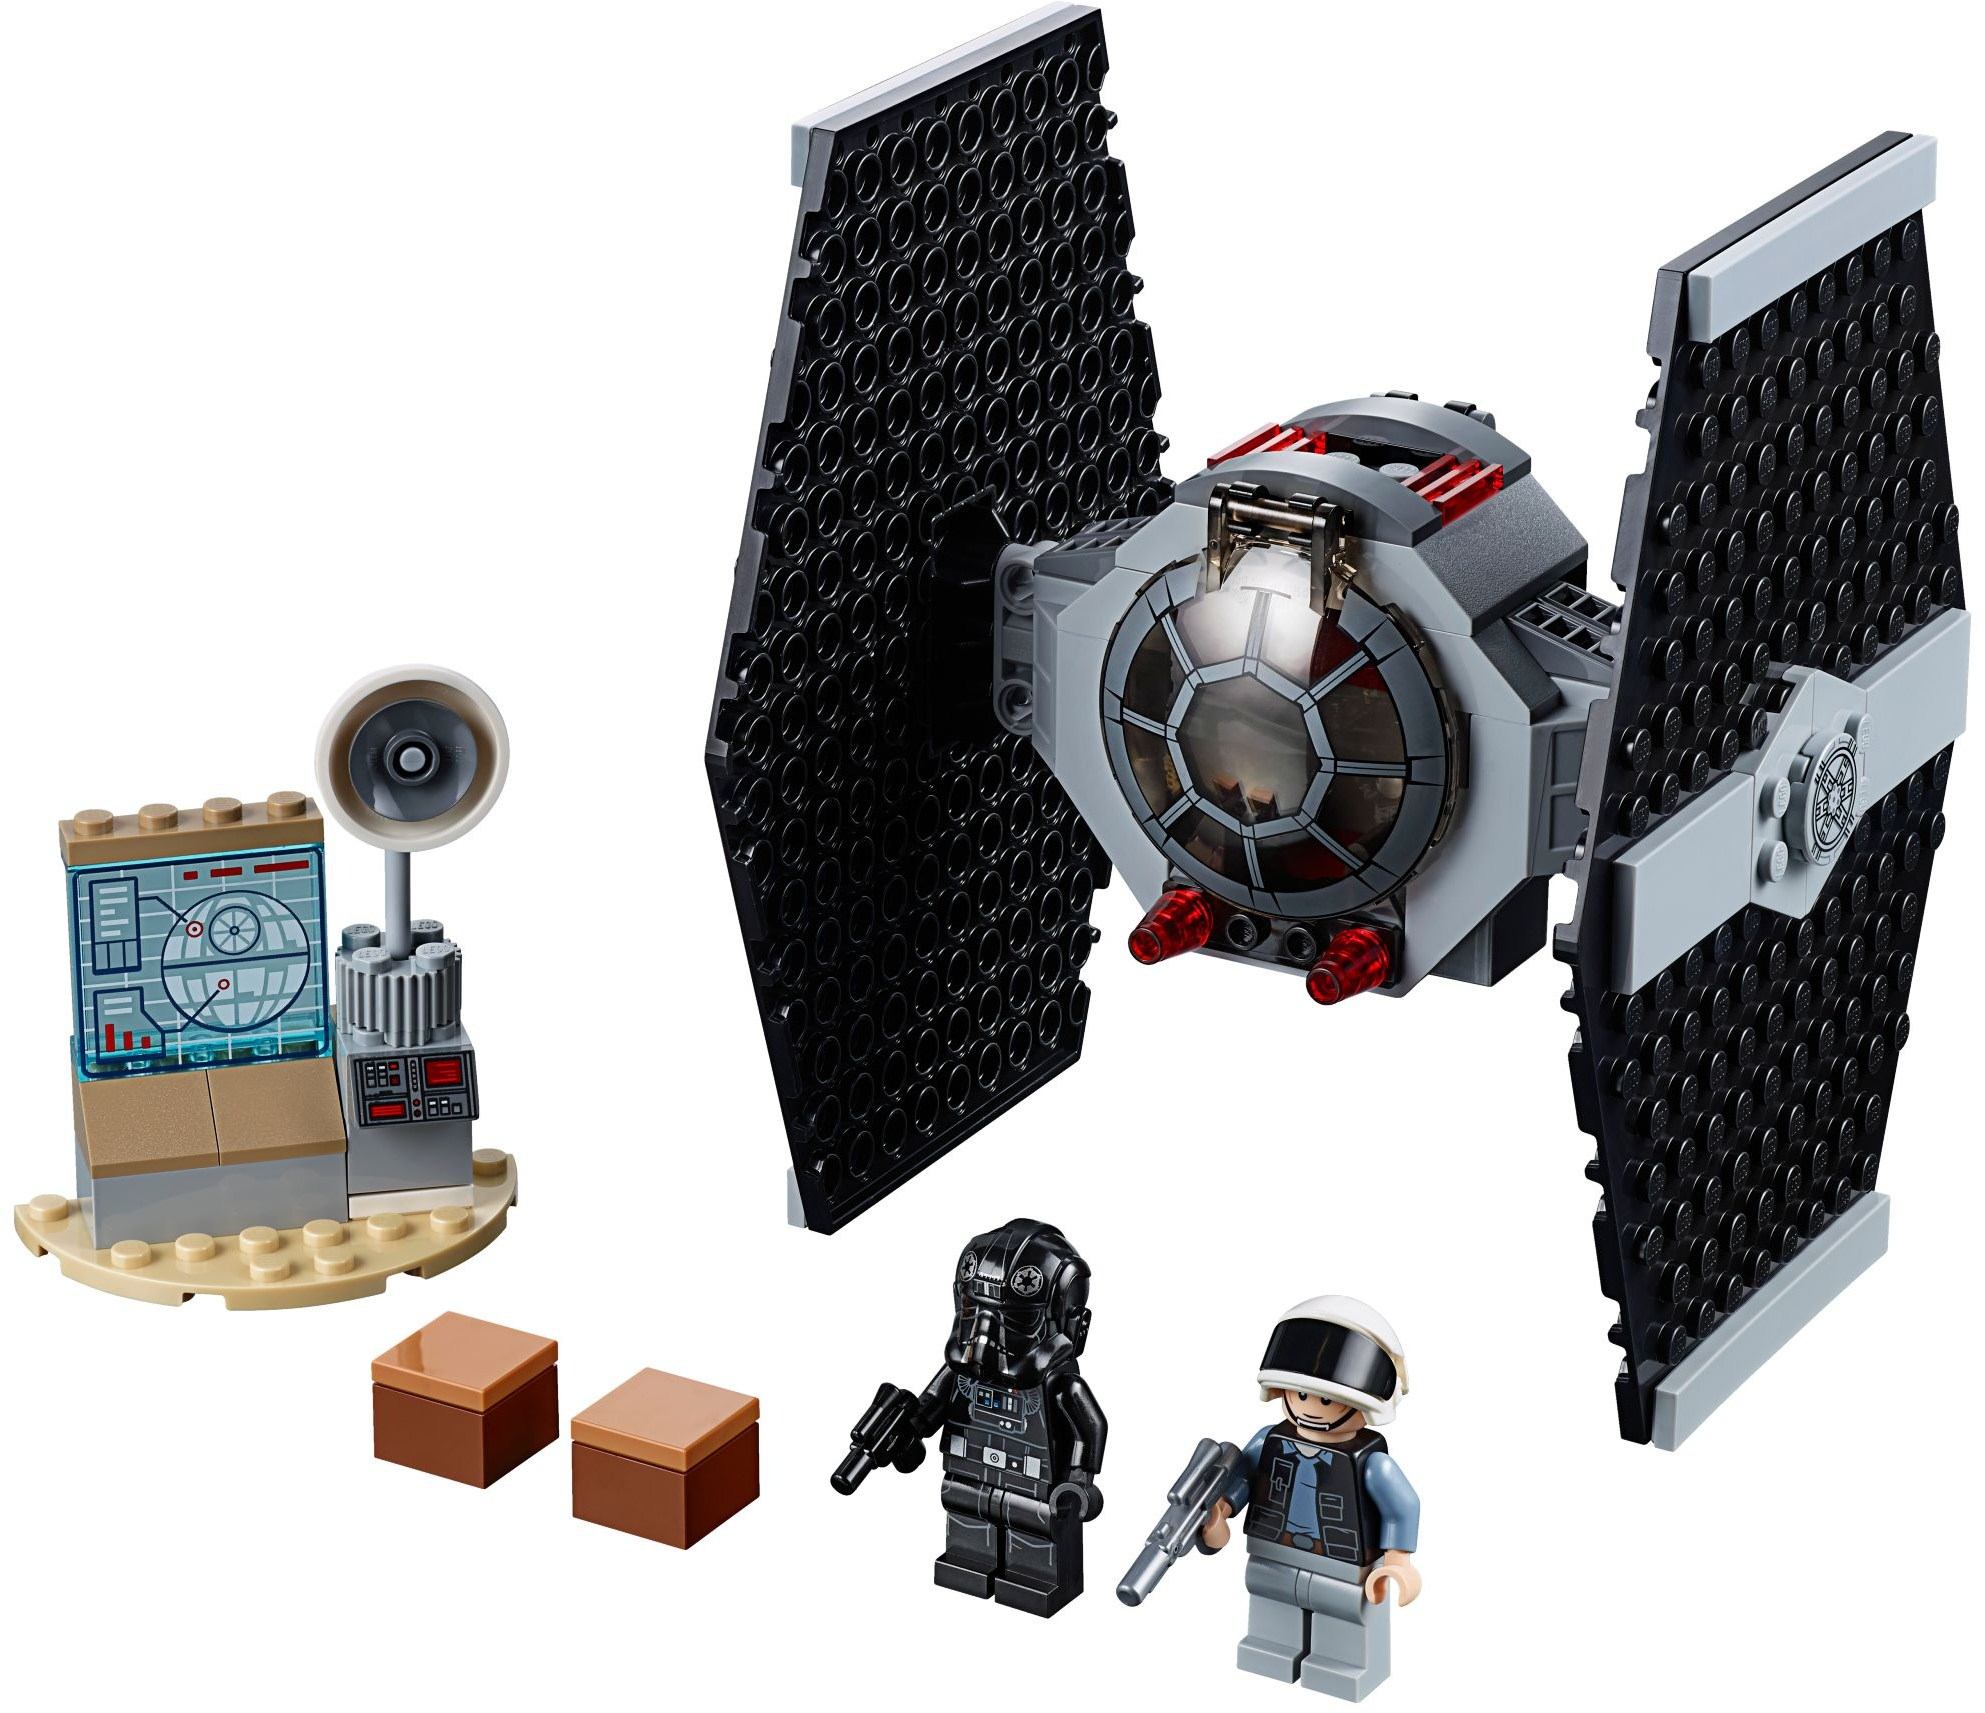 Star Wars 2019 Brickset Lego Set Guide And Database